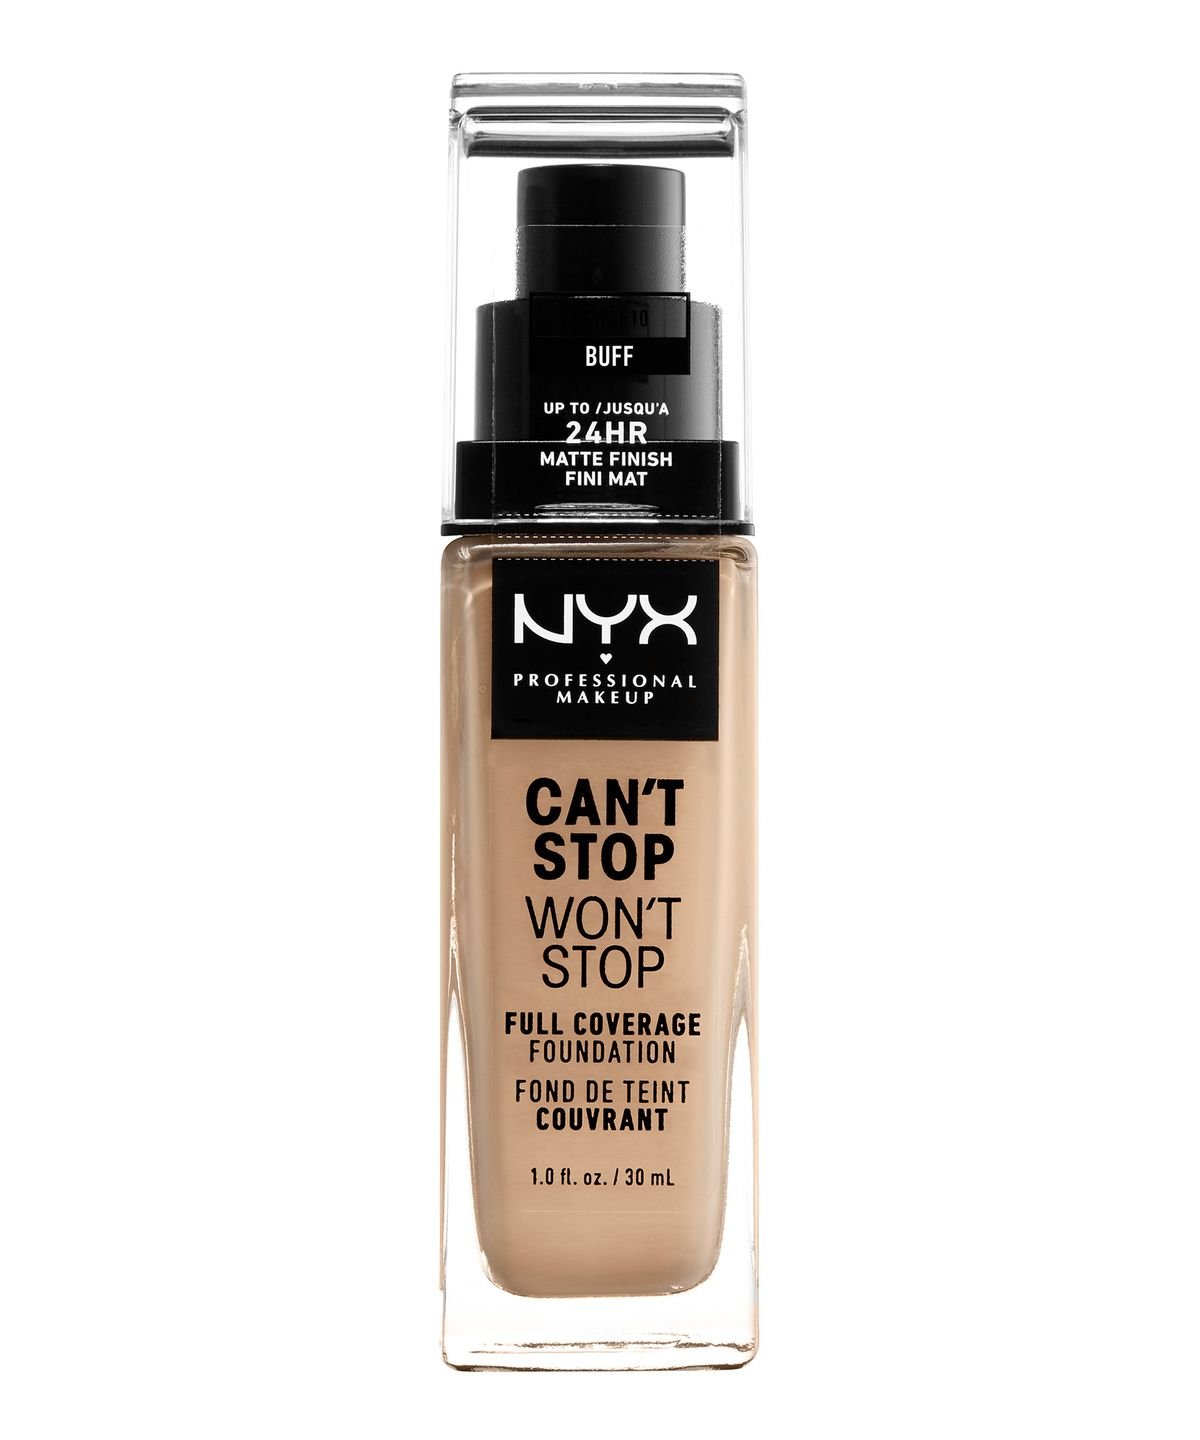 CANT STOP WONT STOP 24HR FOUNDATION BUFF - NYX PROFESSIONAL MAKEUP